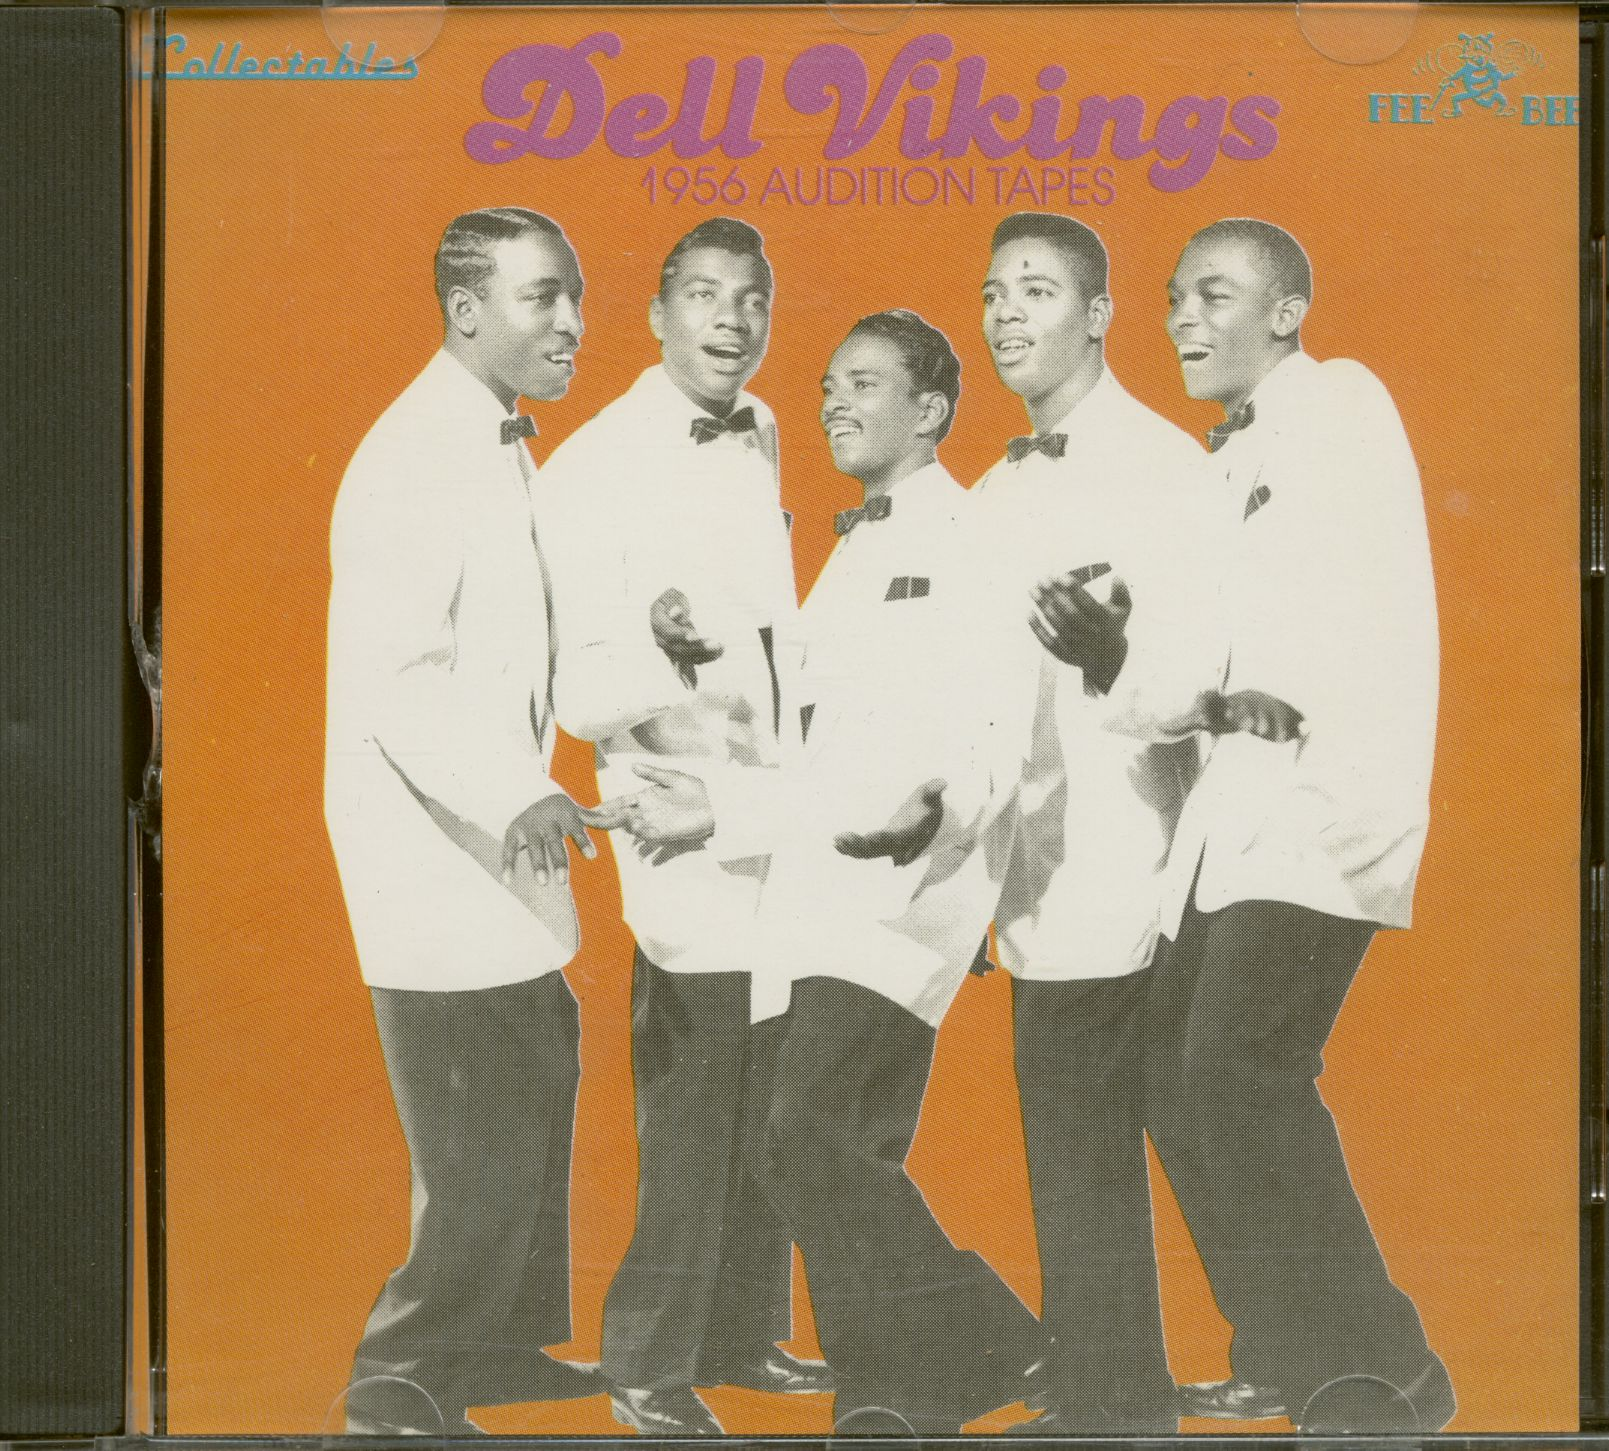 The Del Vikings 1956 Audition Tapes Vocal Groups Doo Wop